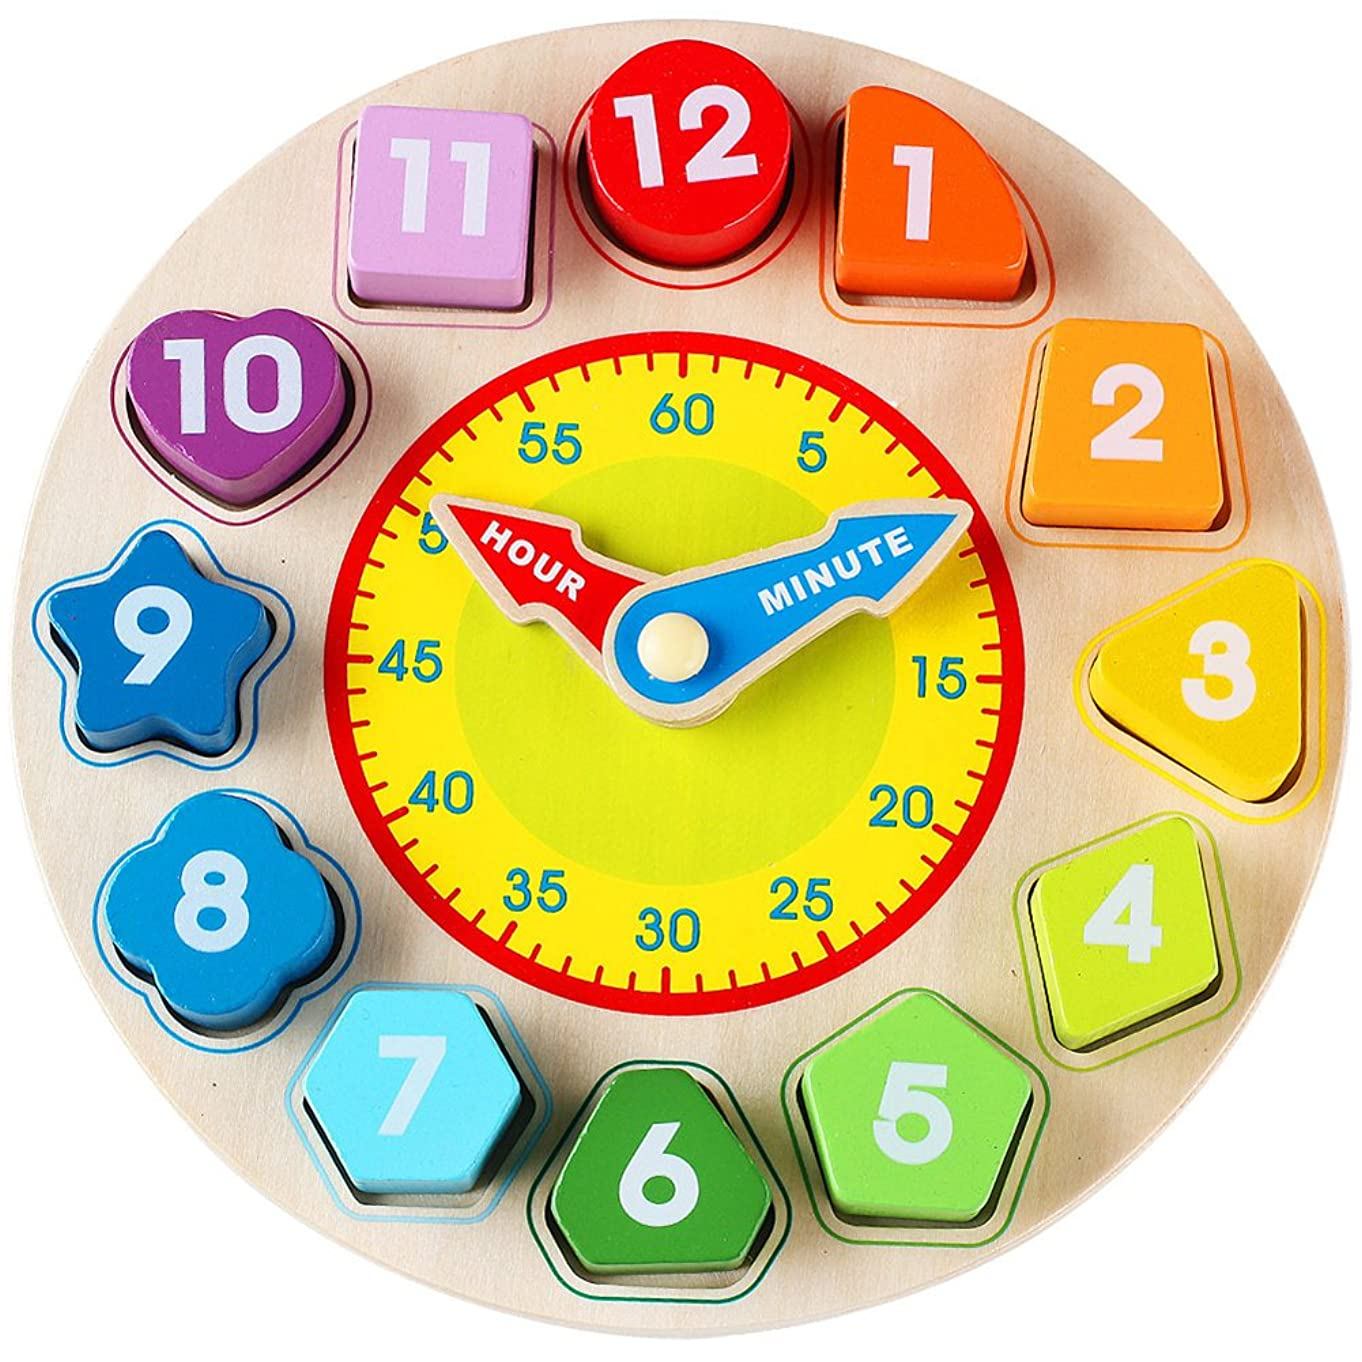 Toyssa Wooden Teaching Shape Sorting Clock Educational Toys Games for Kids 3 Years Old